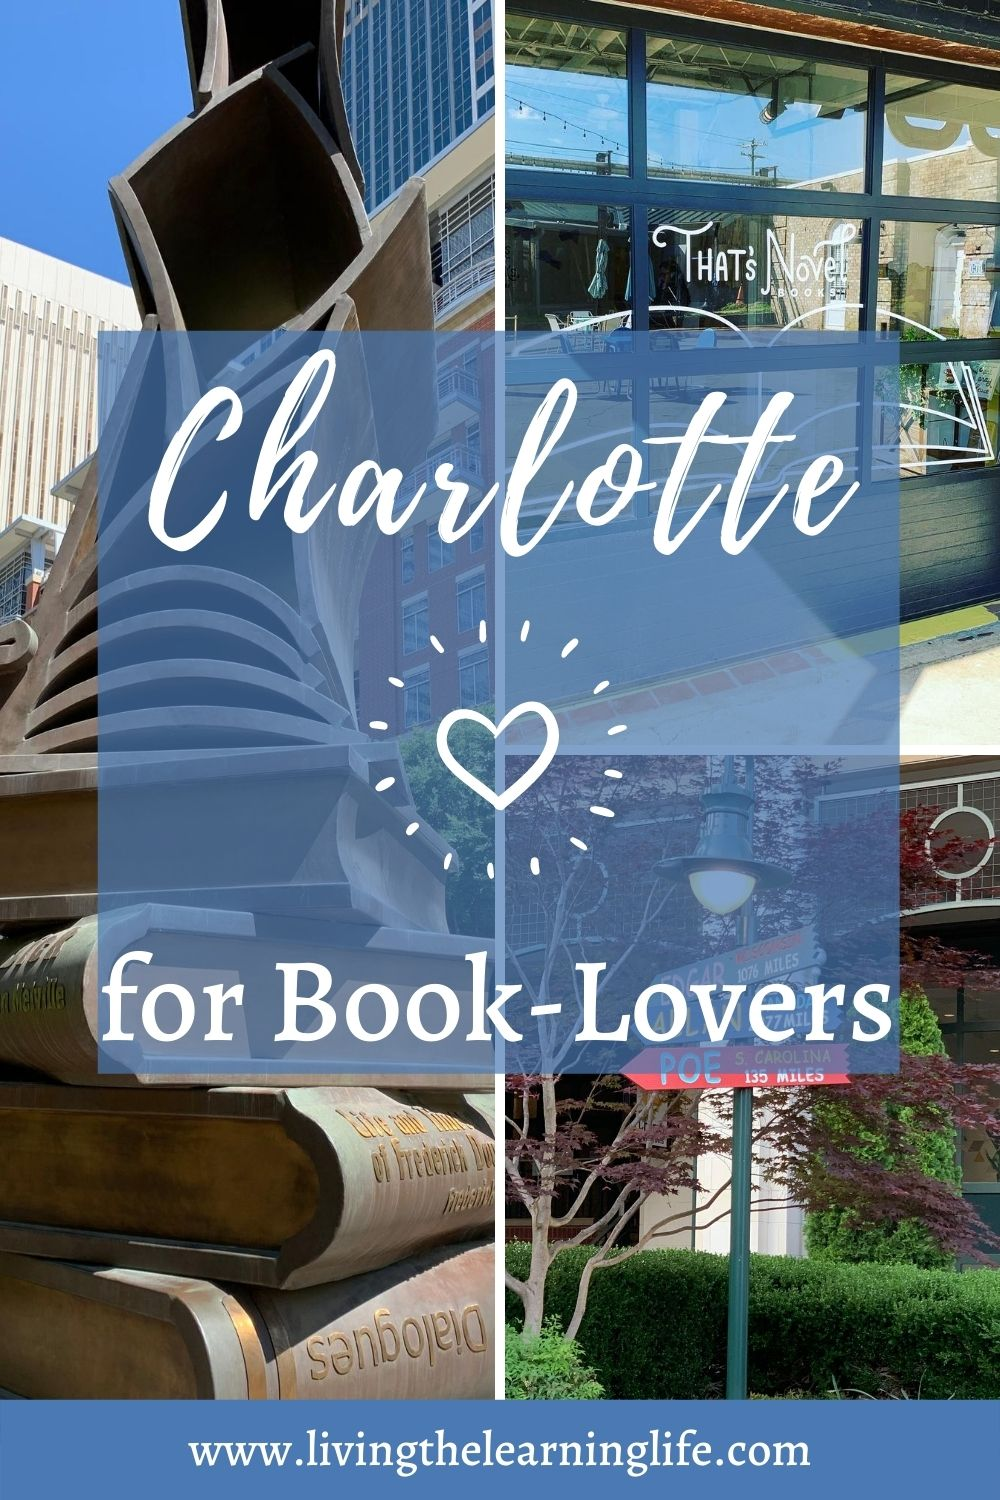 Charlotte for Book-Lovers